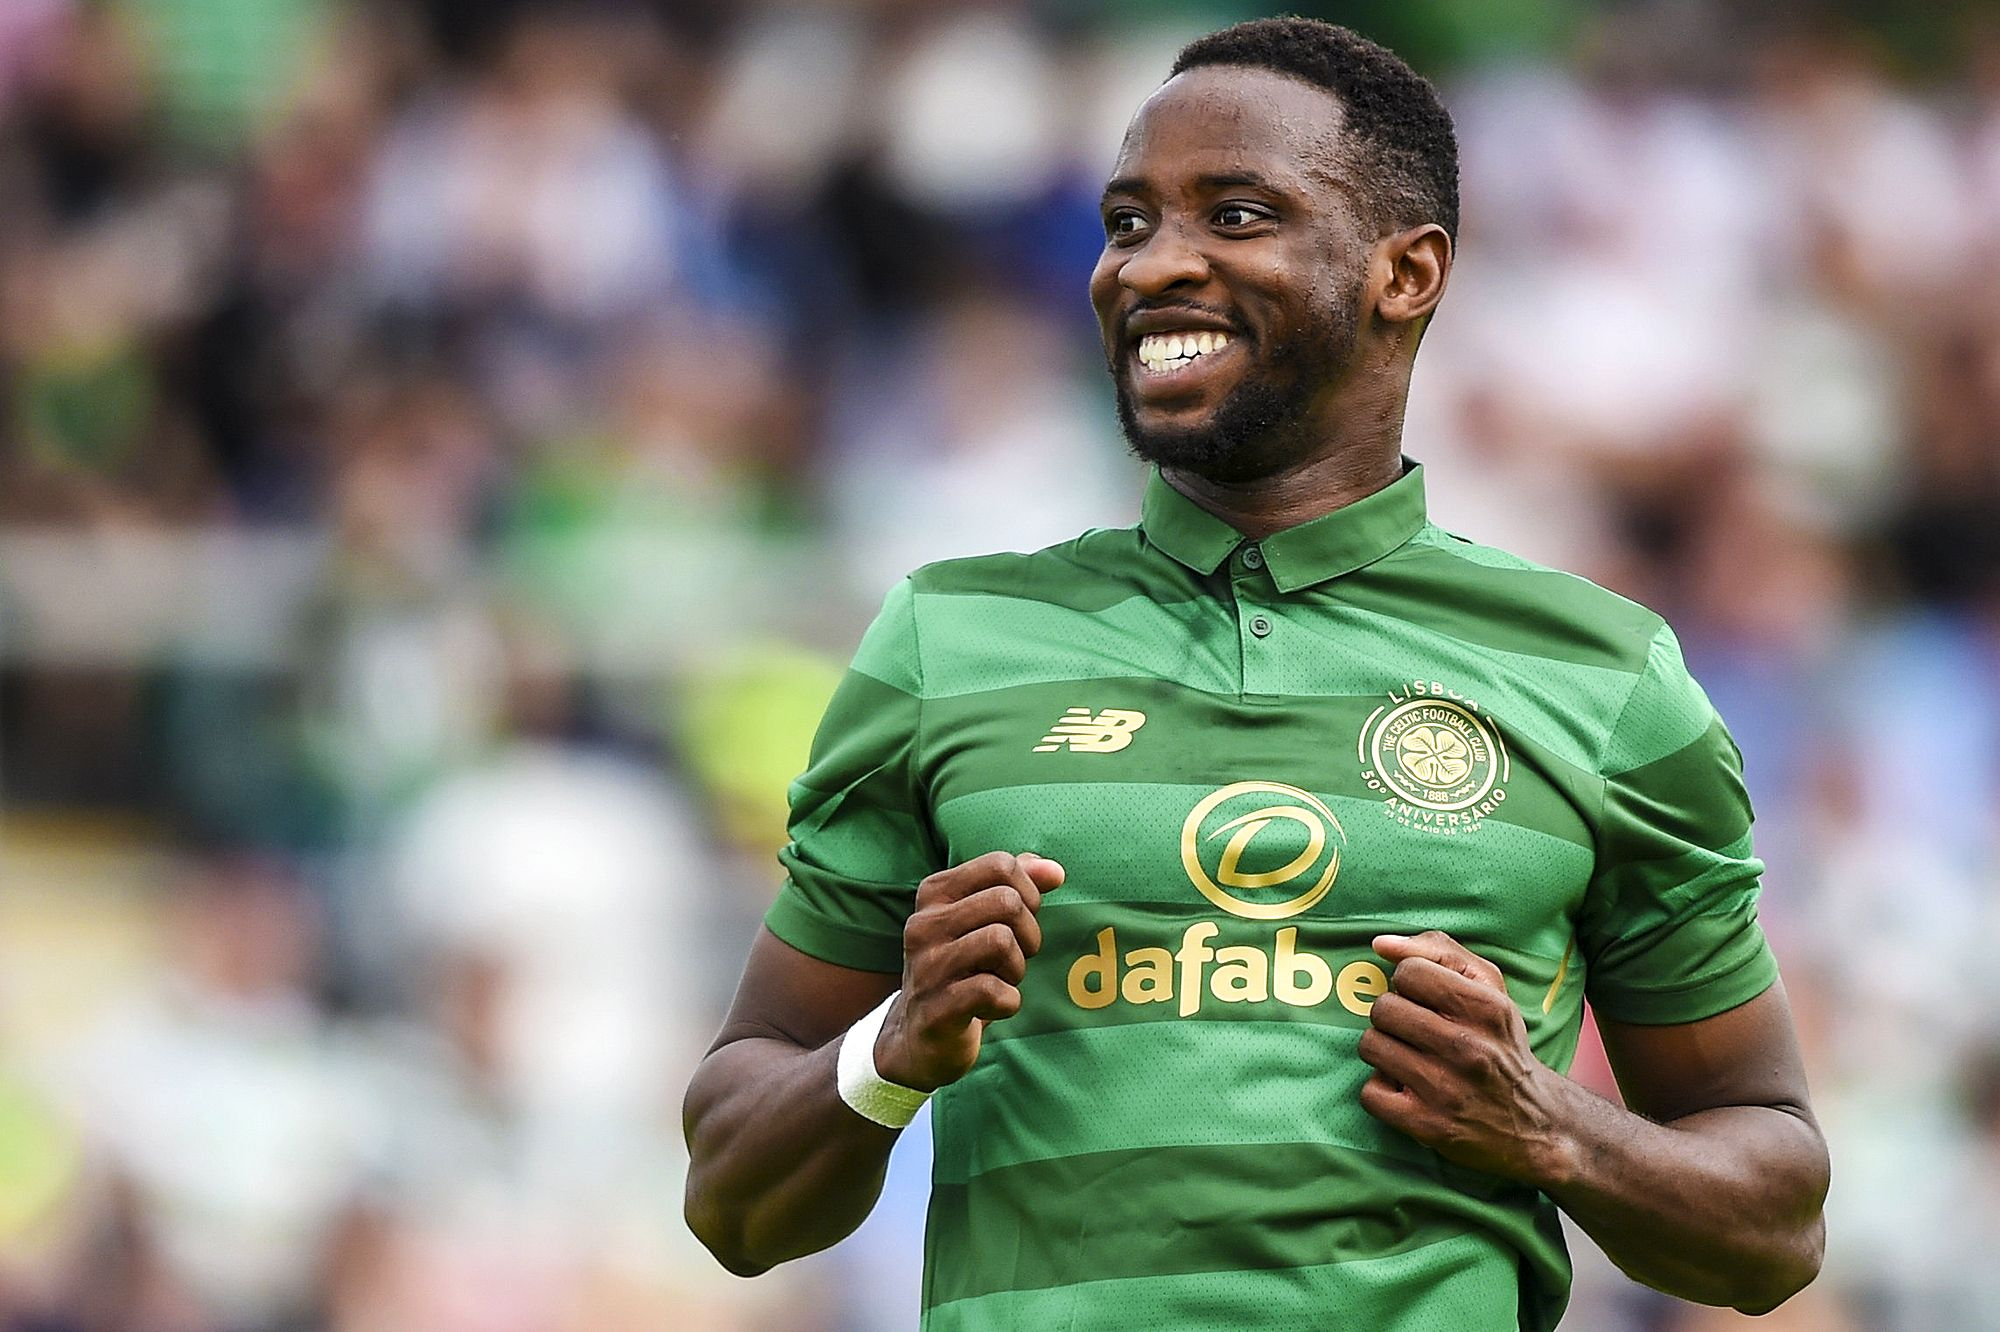 Moussa Dembele 21 Celtic Europe top 21 players 21 years old